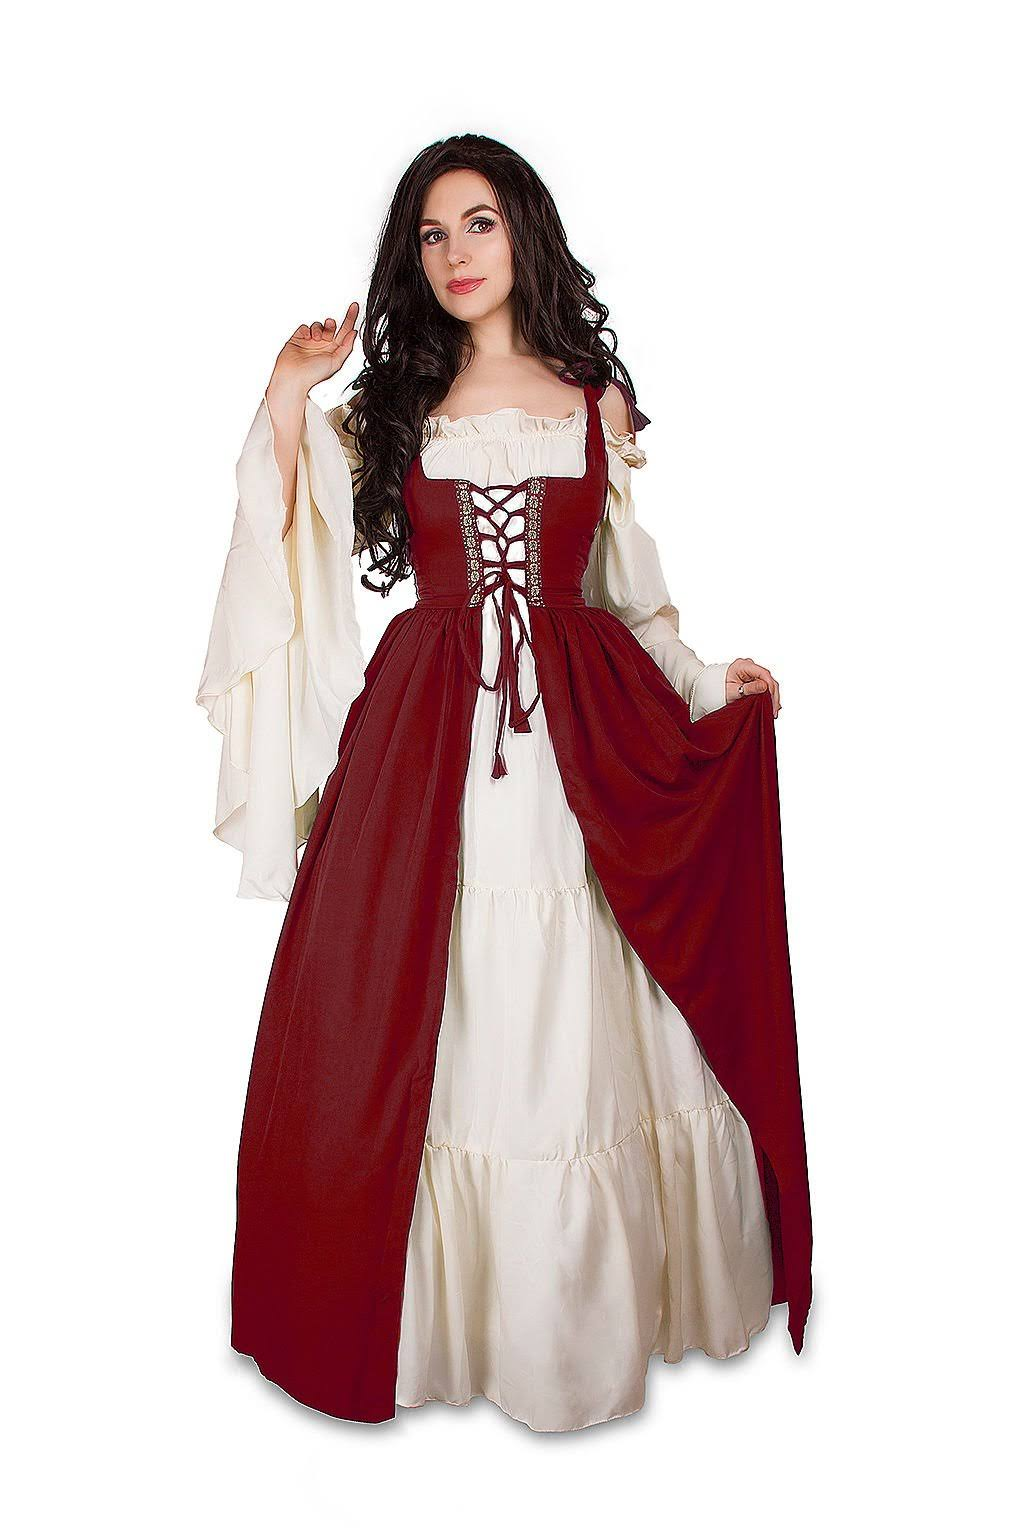 Set Costume Chemise Dress Cream Over Medieval Renaissance Mythic Irish amp; qpnwf7qSz